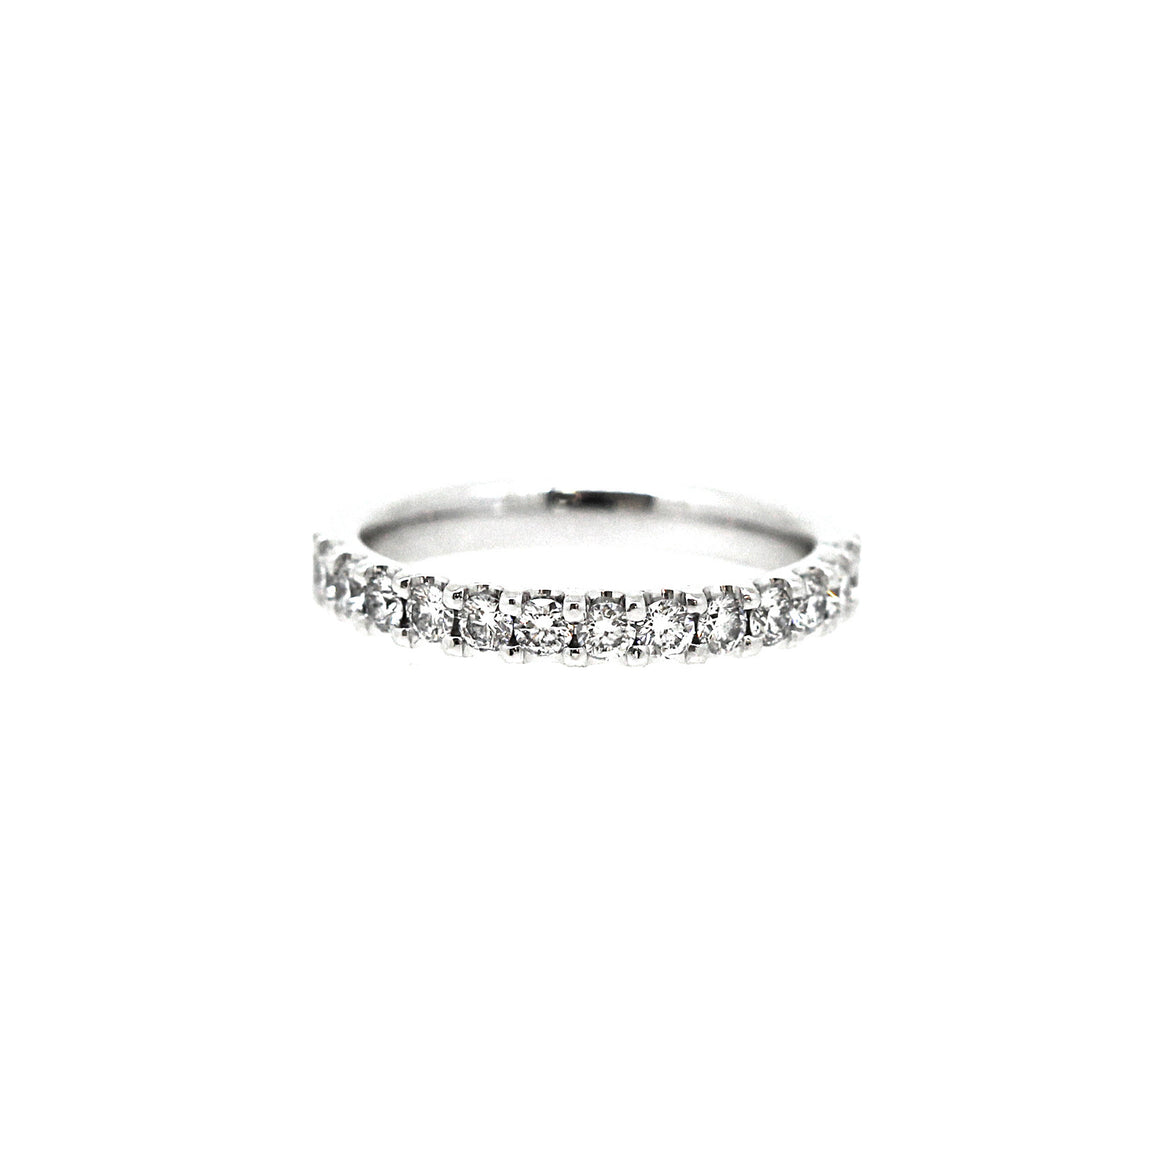 4-Claw 0.34 carat White Gold Diamond Ring